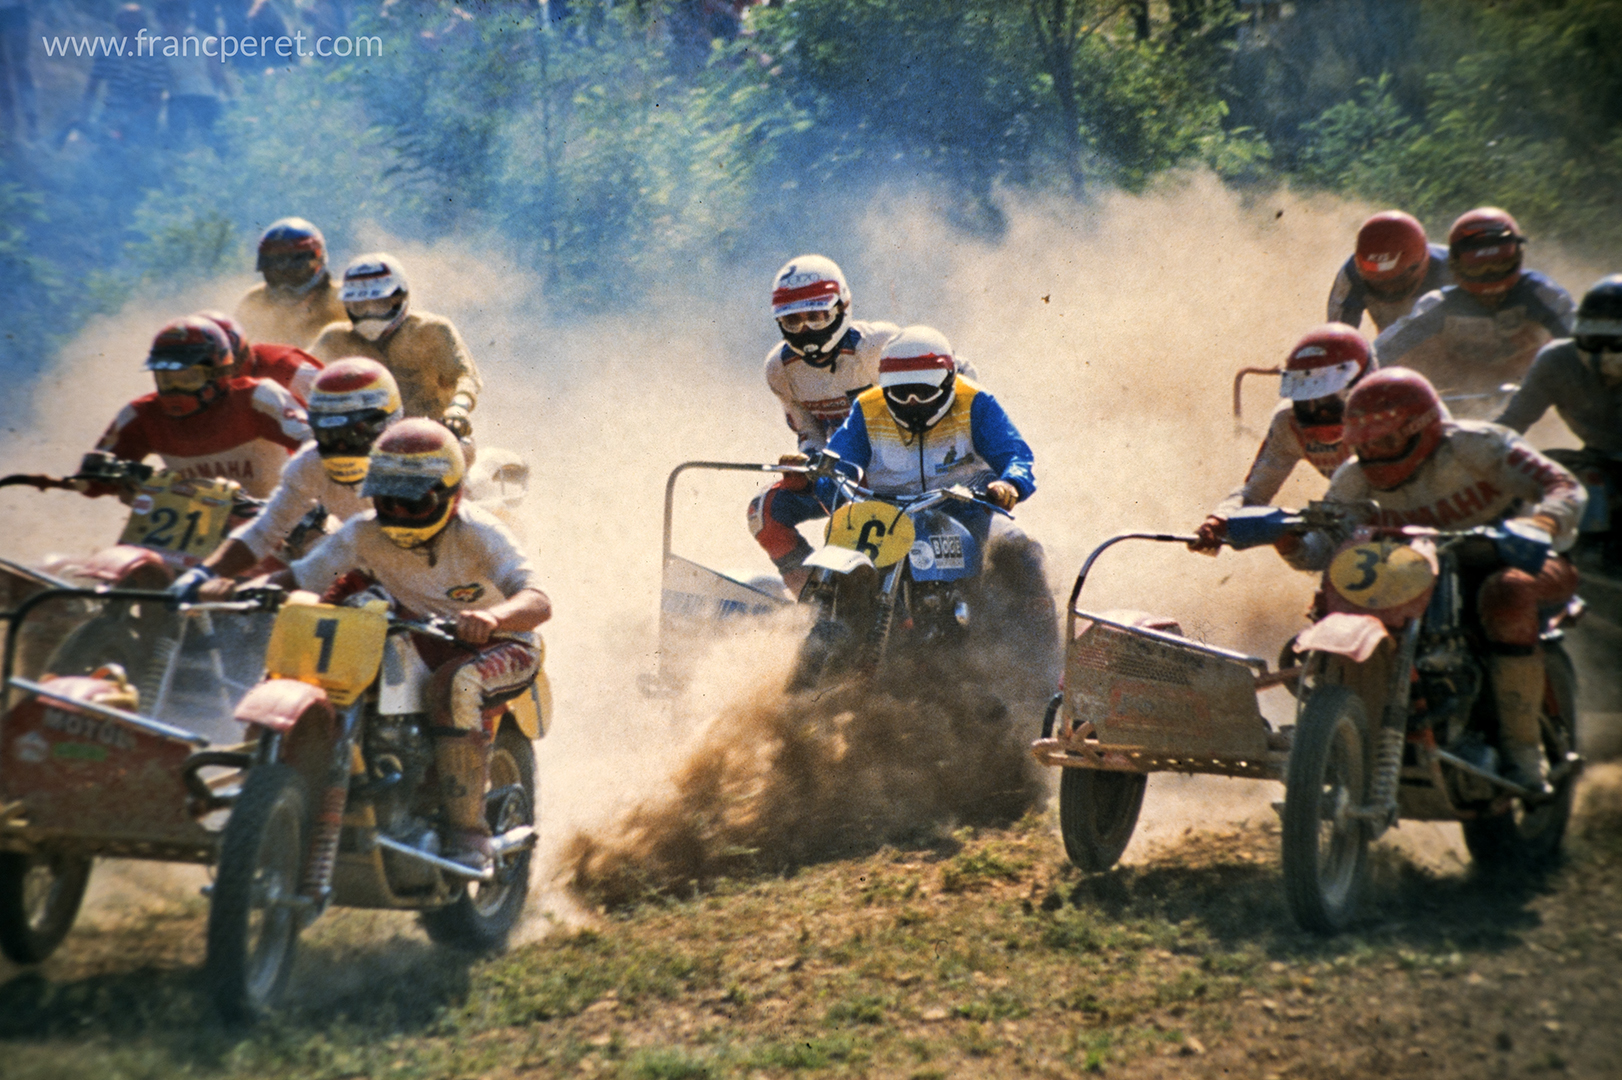 Start was both the most exciting and risky moment with 30 side-car packed together willing to reach the first corner in front of everyone else.